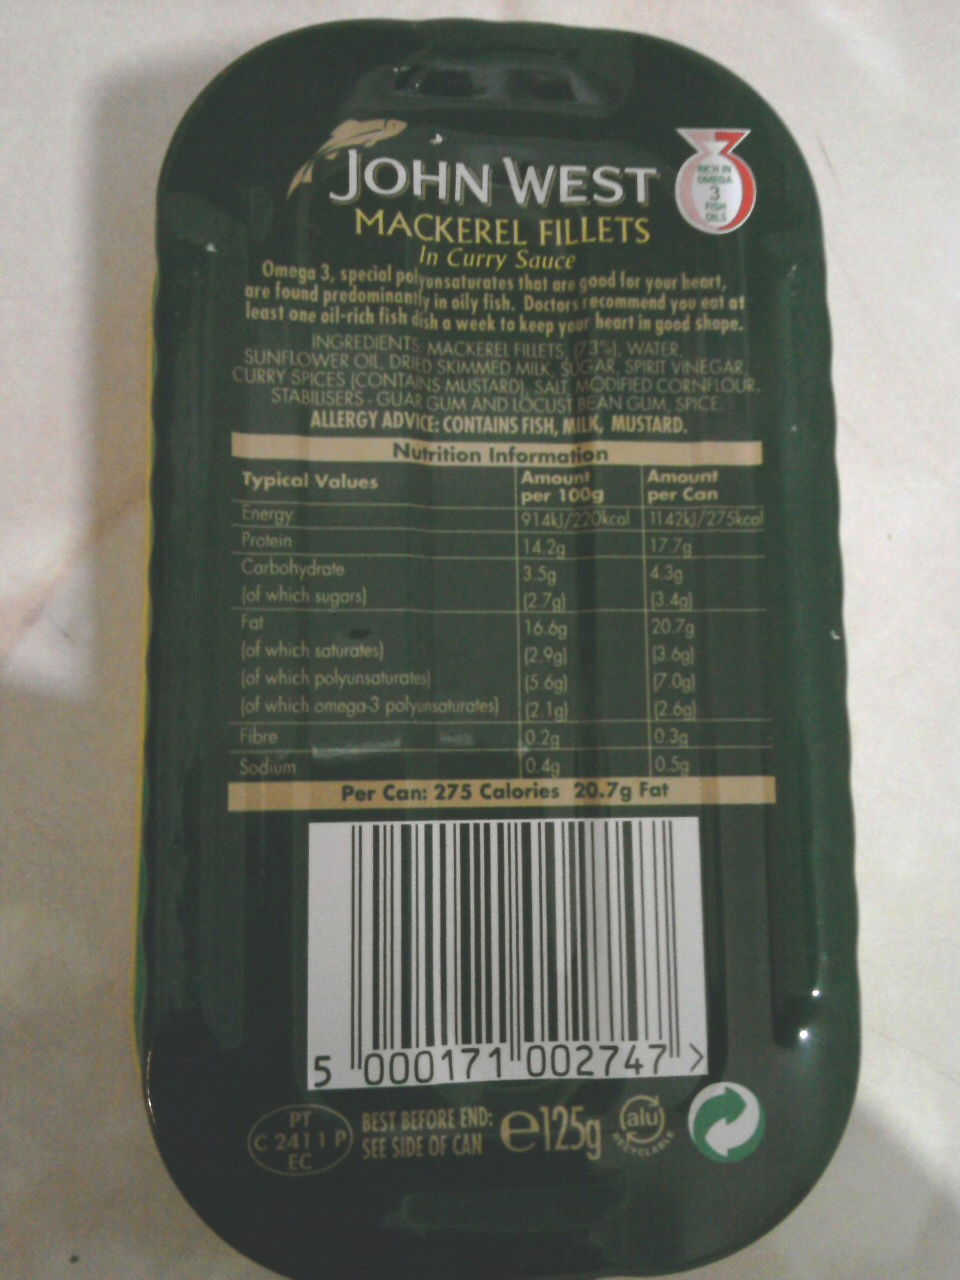 John West Mackerel Fillets In Curry Sauce back of tin